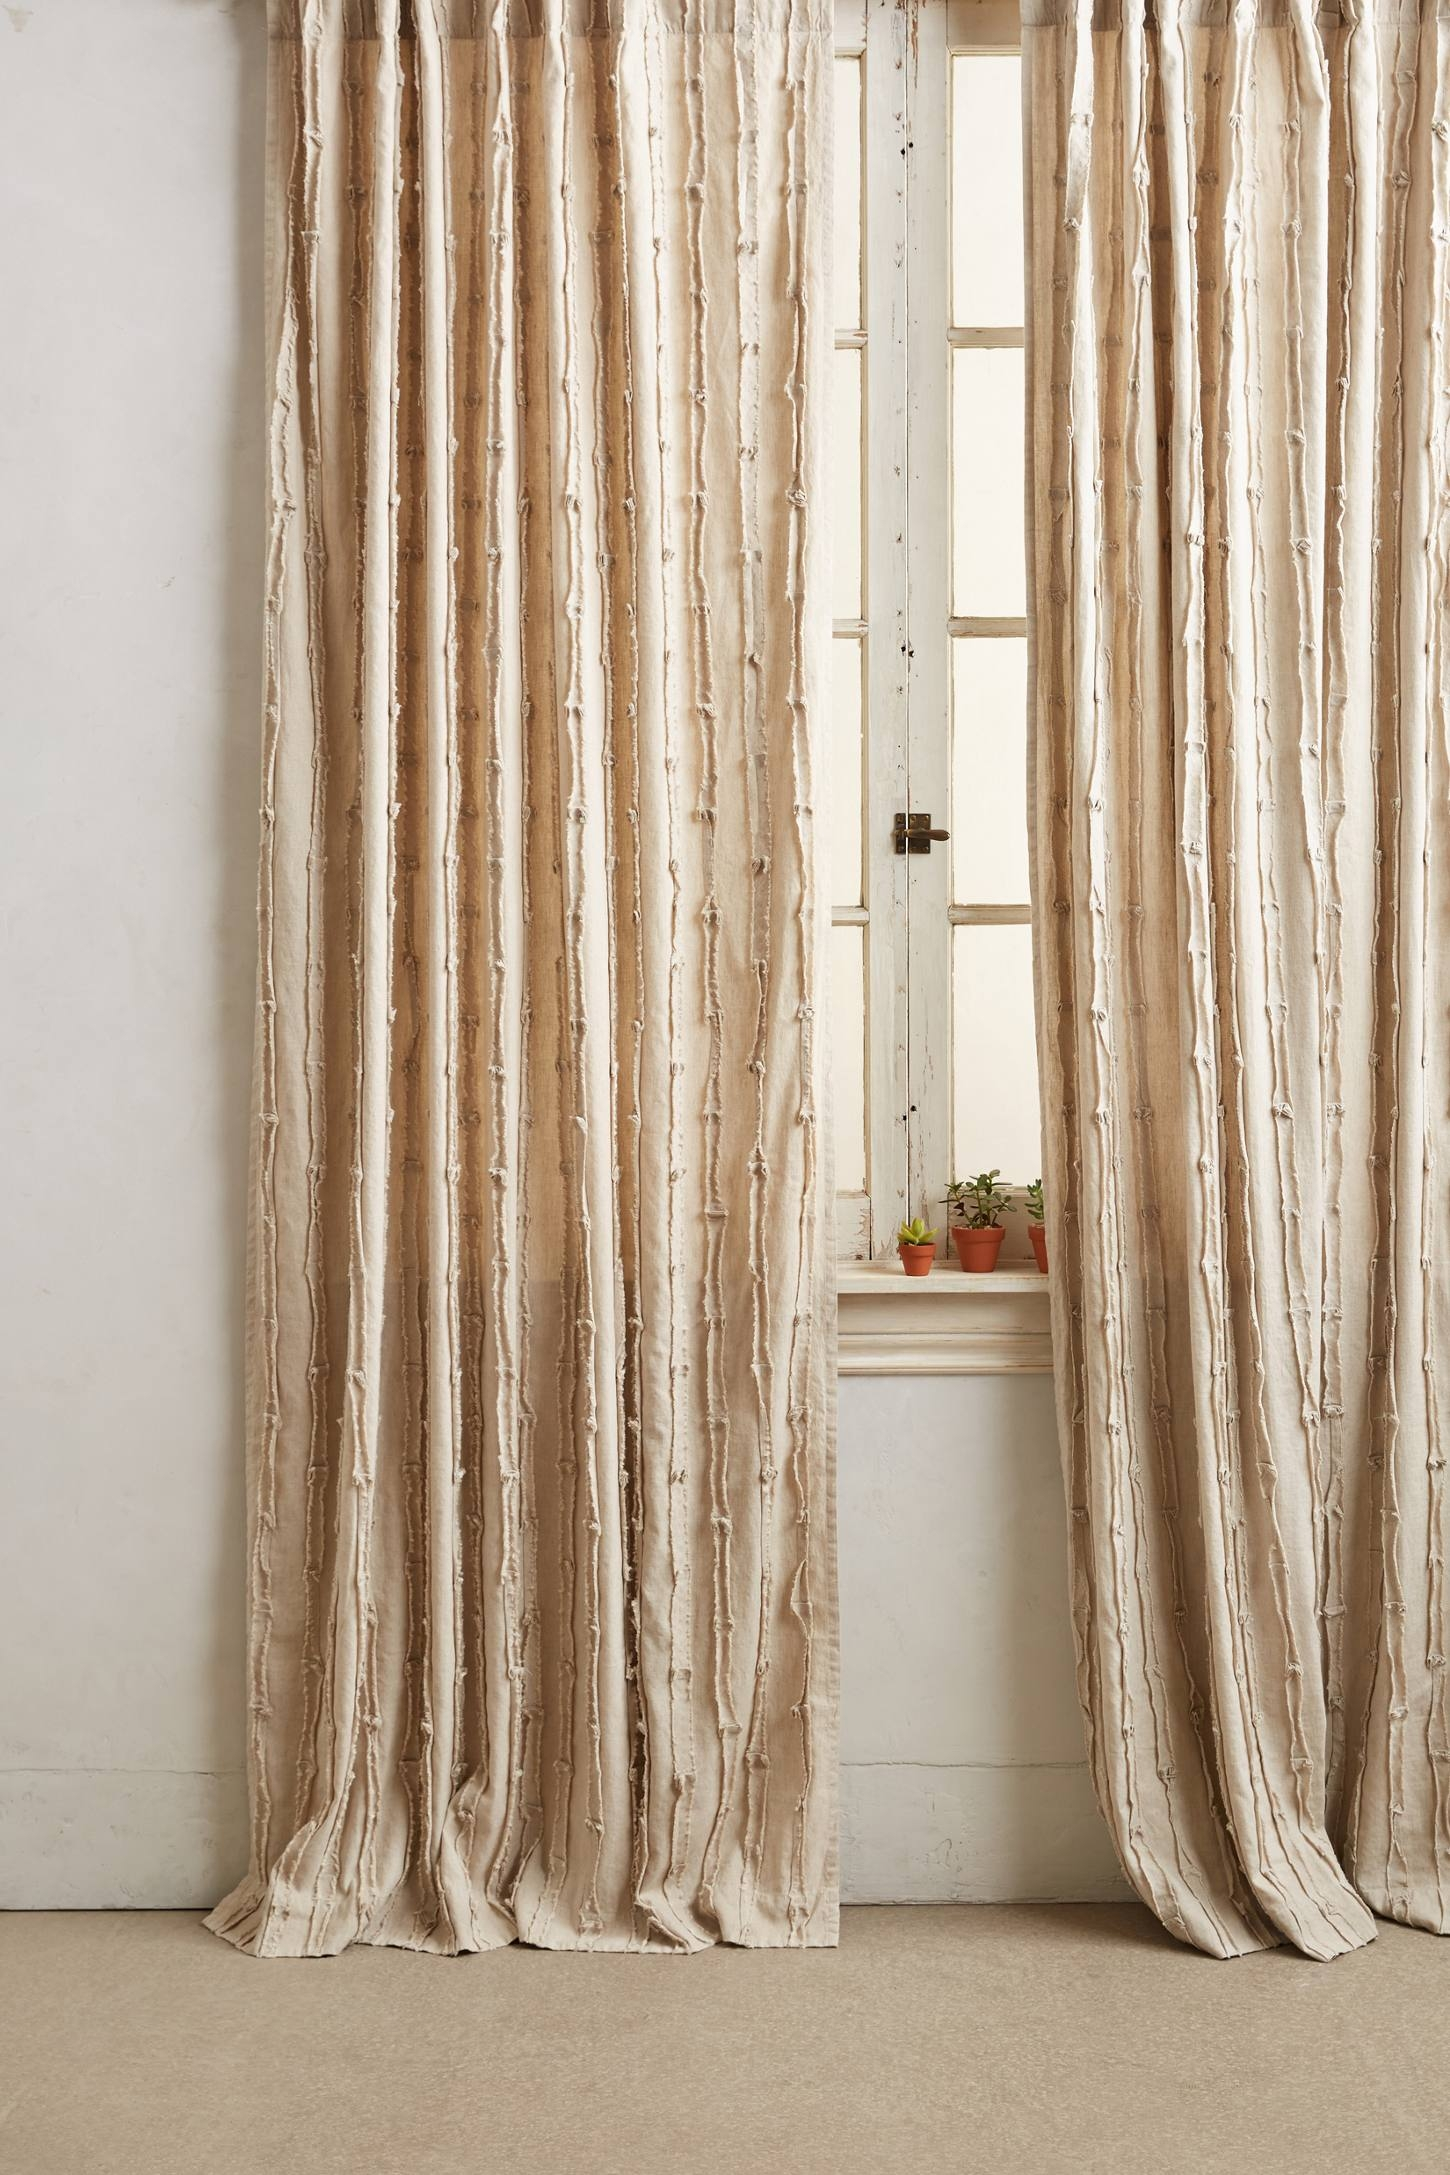 Textured Linen Curtain Linen Curtains Linens And Curtains Throughout Textured Linen Curtains (Image 13 of 15)